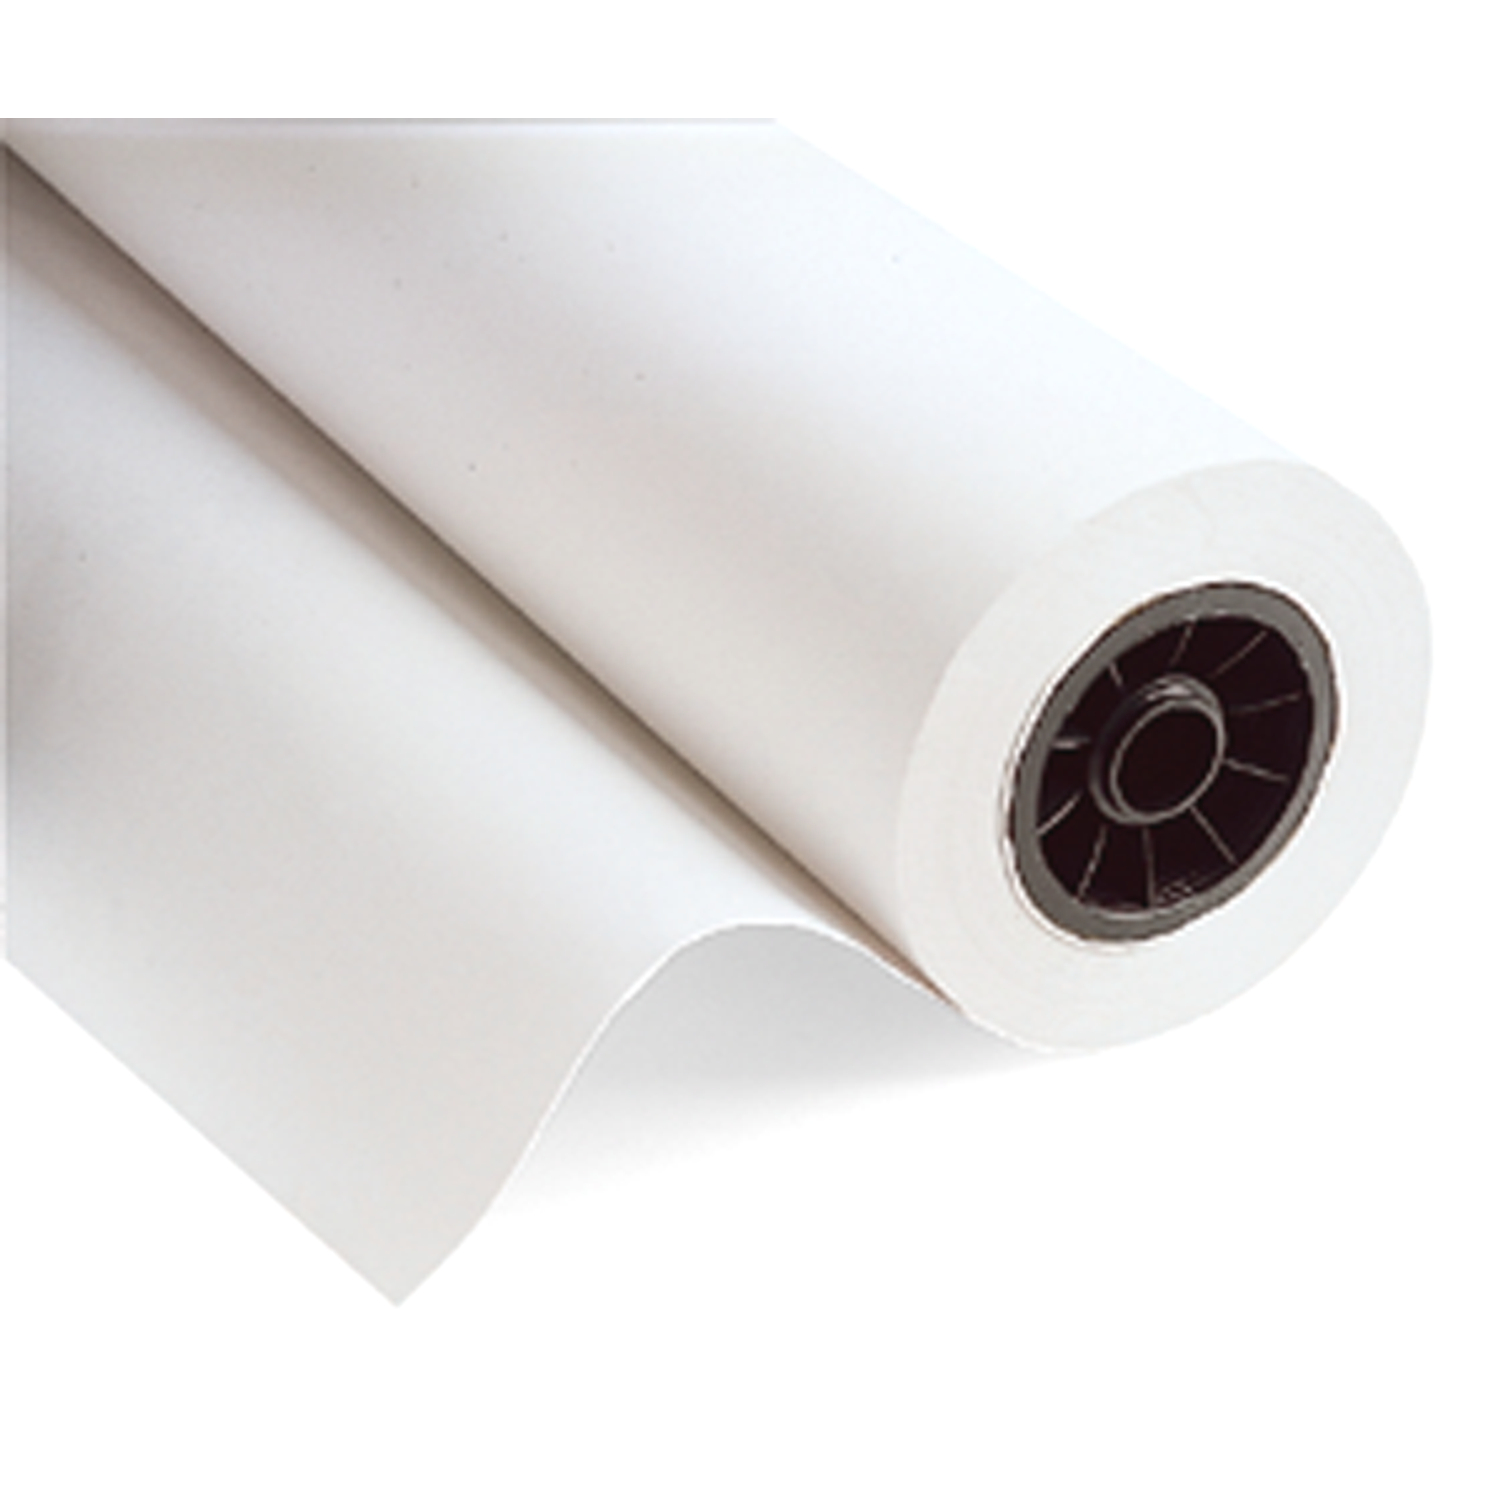 What is 25% cotton bond paper?